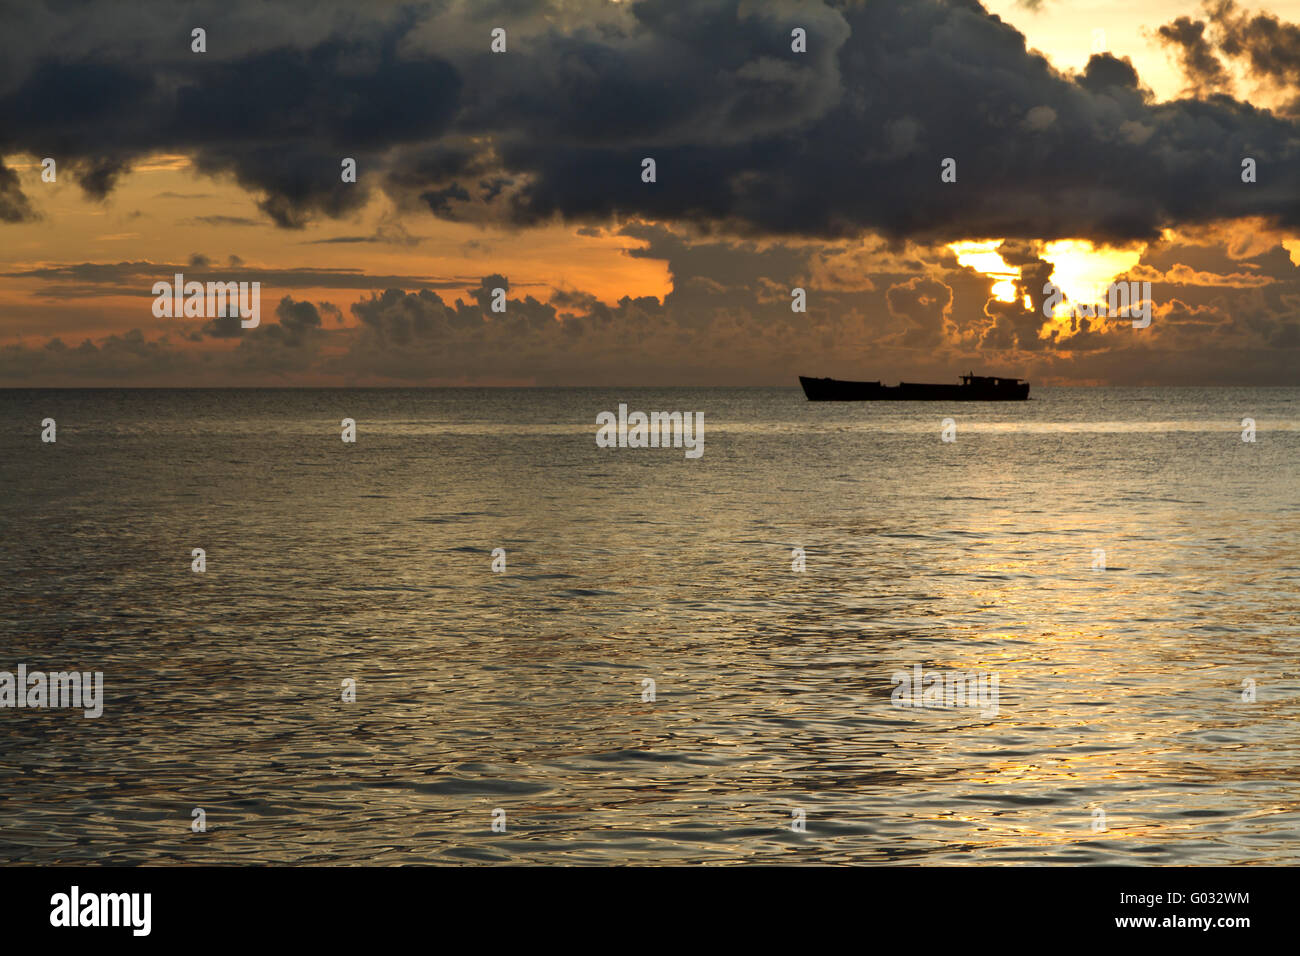 Ship with threatening clouds over South China Sea at Phu Quoc, Vietnam - Stock Image